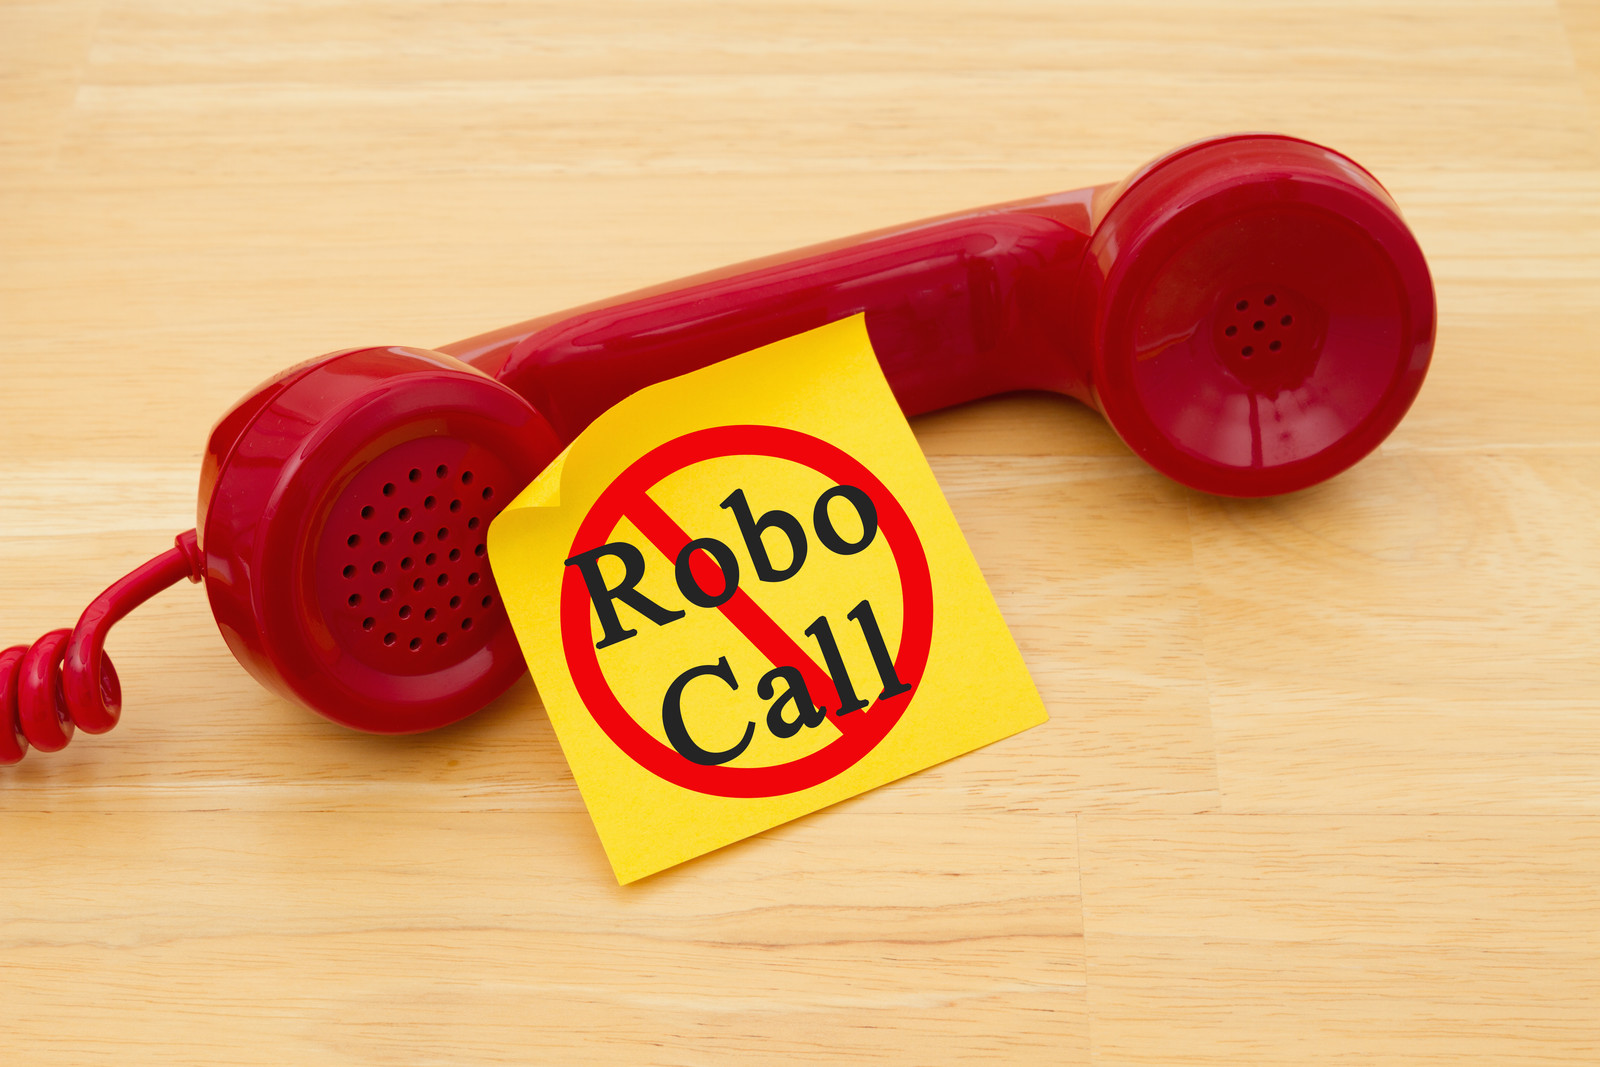 retro red phone handset with a yellow sticky note and text  that says robocall with the red circle with a line through it over the top of the words